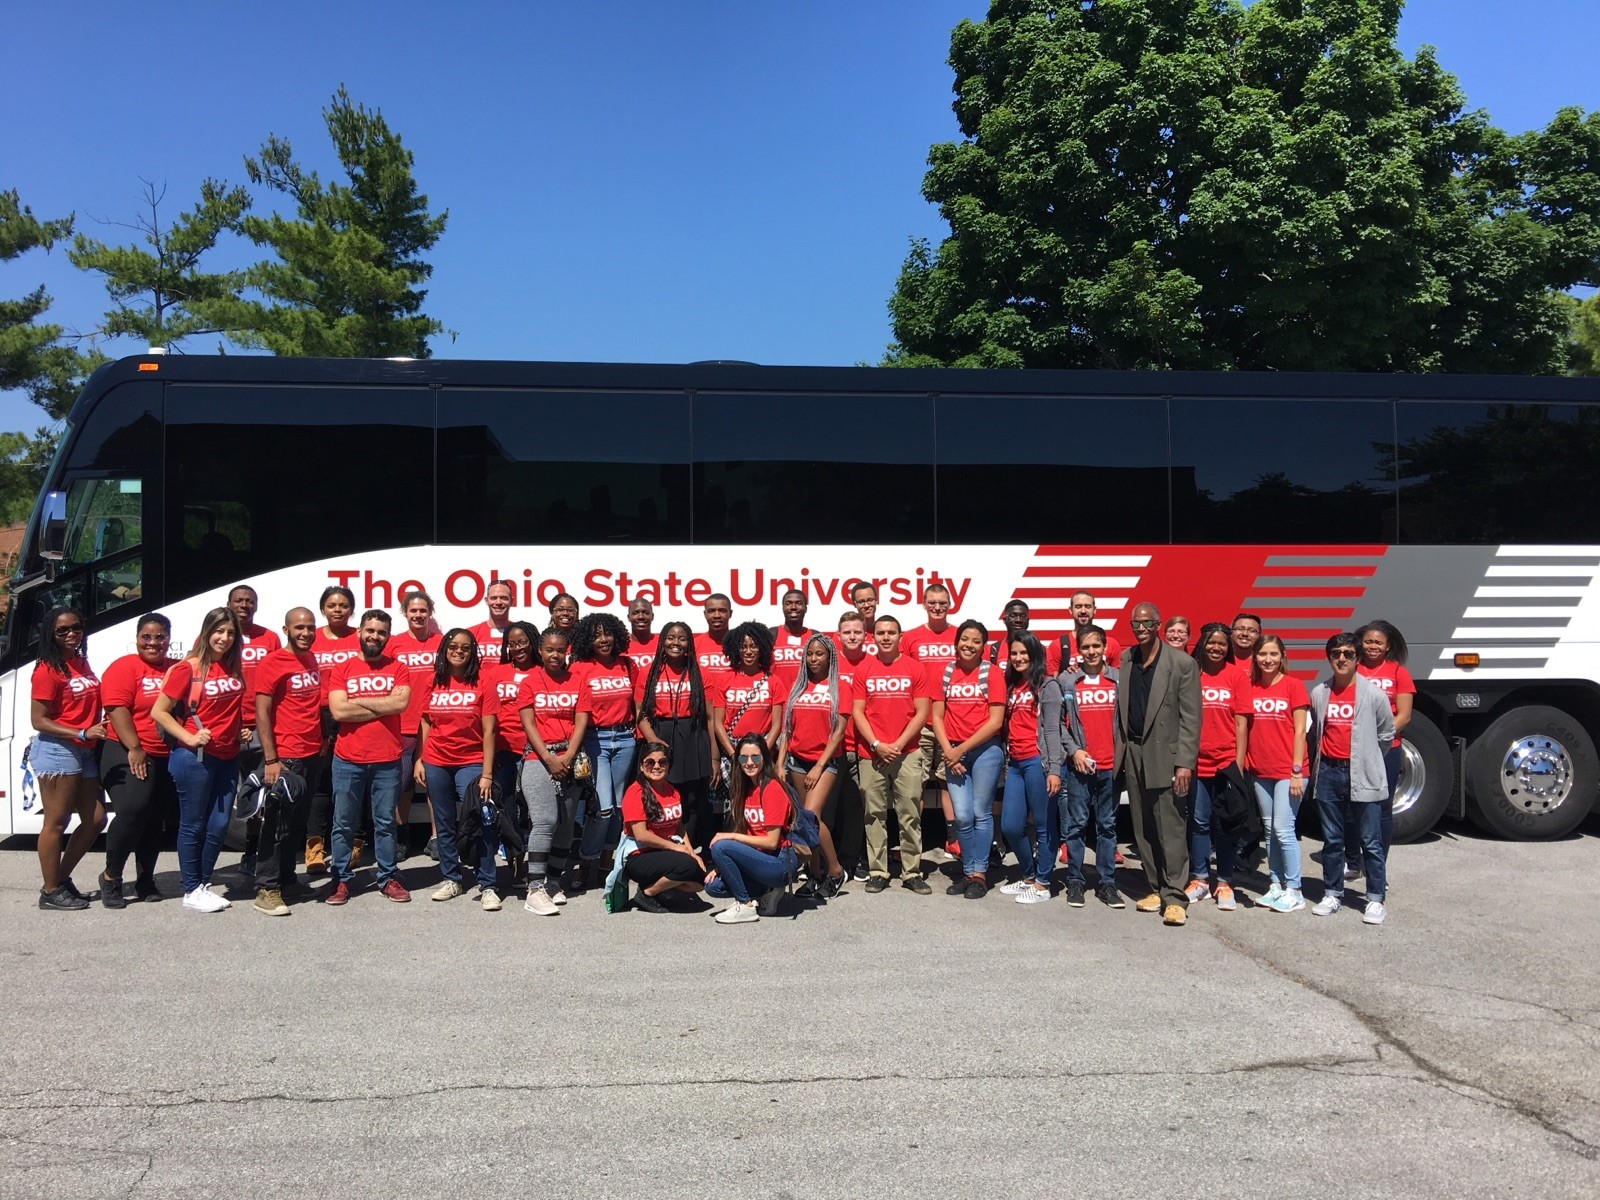 Ohio State Students Help Needy Families The Ohio State University